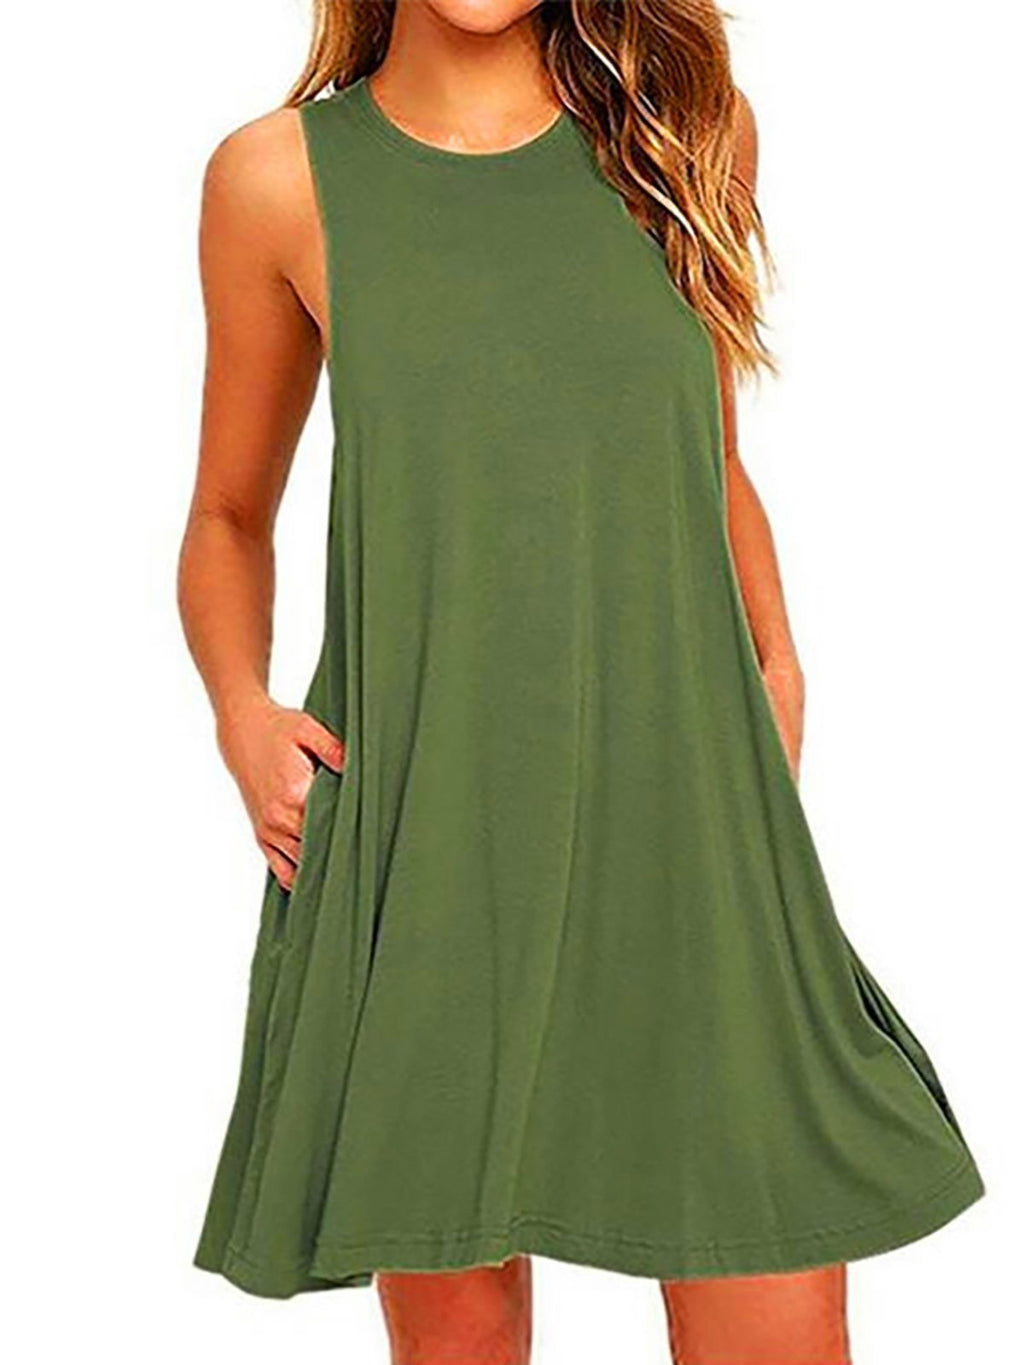 Dress - Sleeveless Casual A-Line Casual Dress